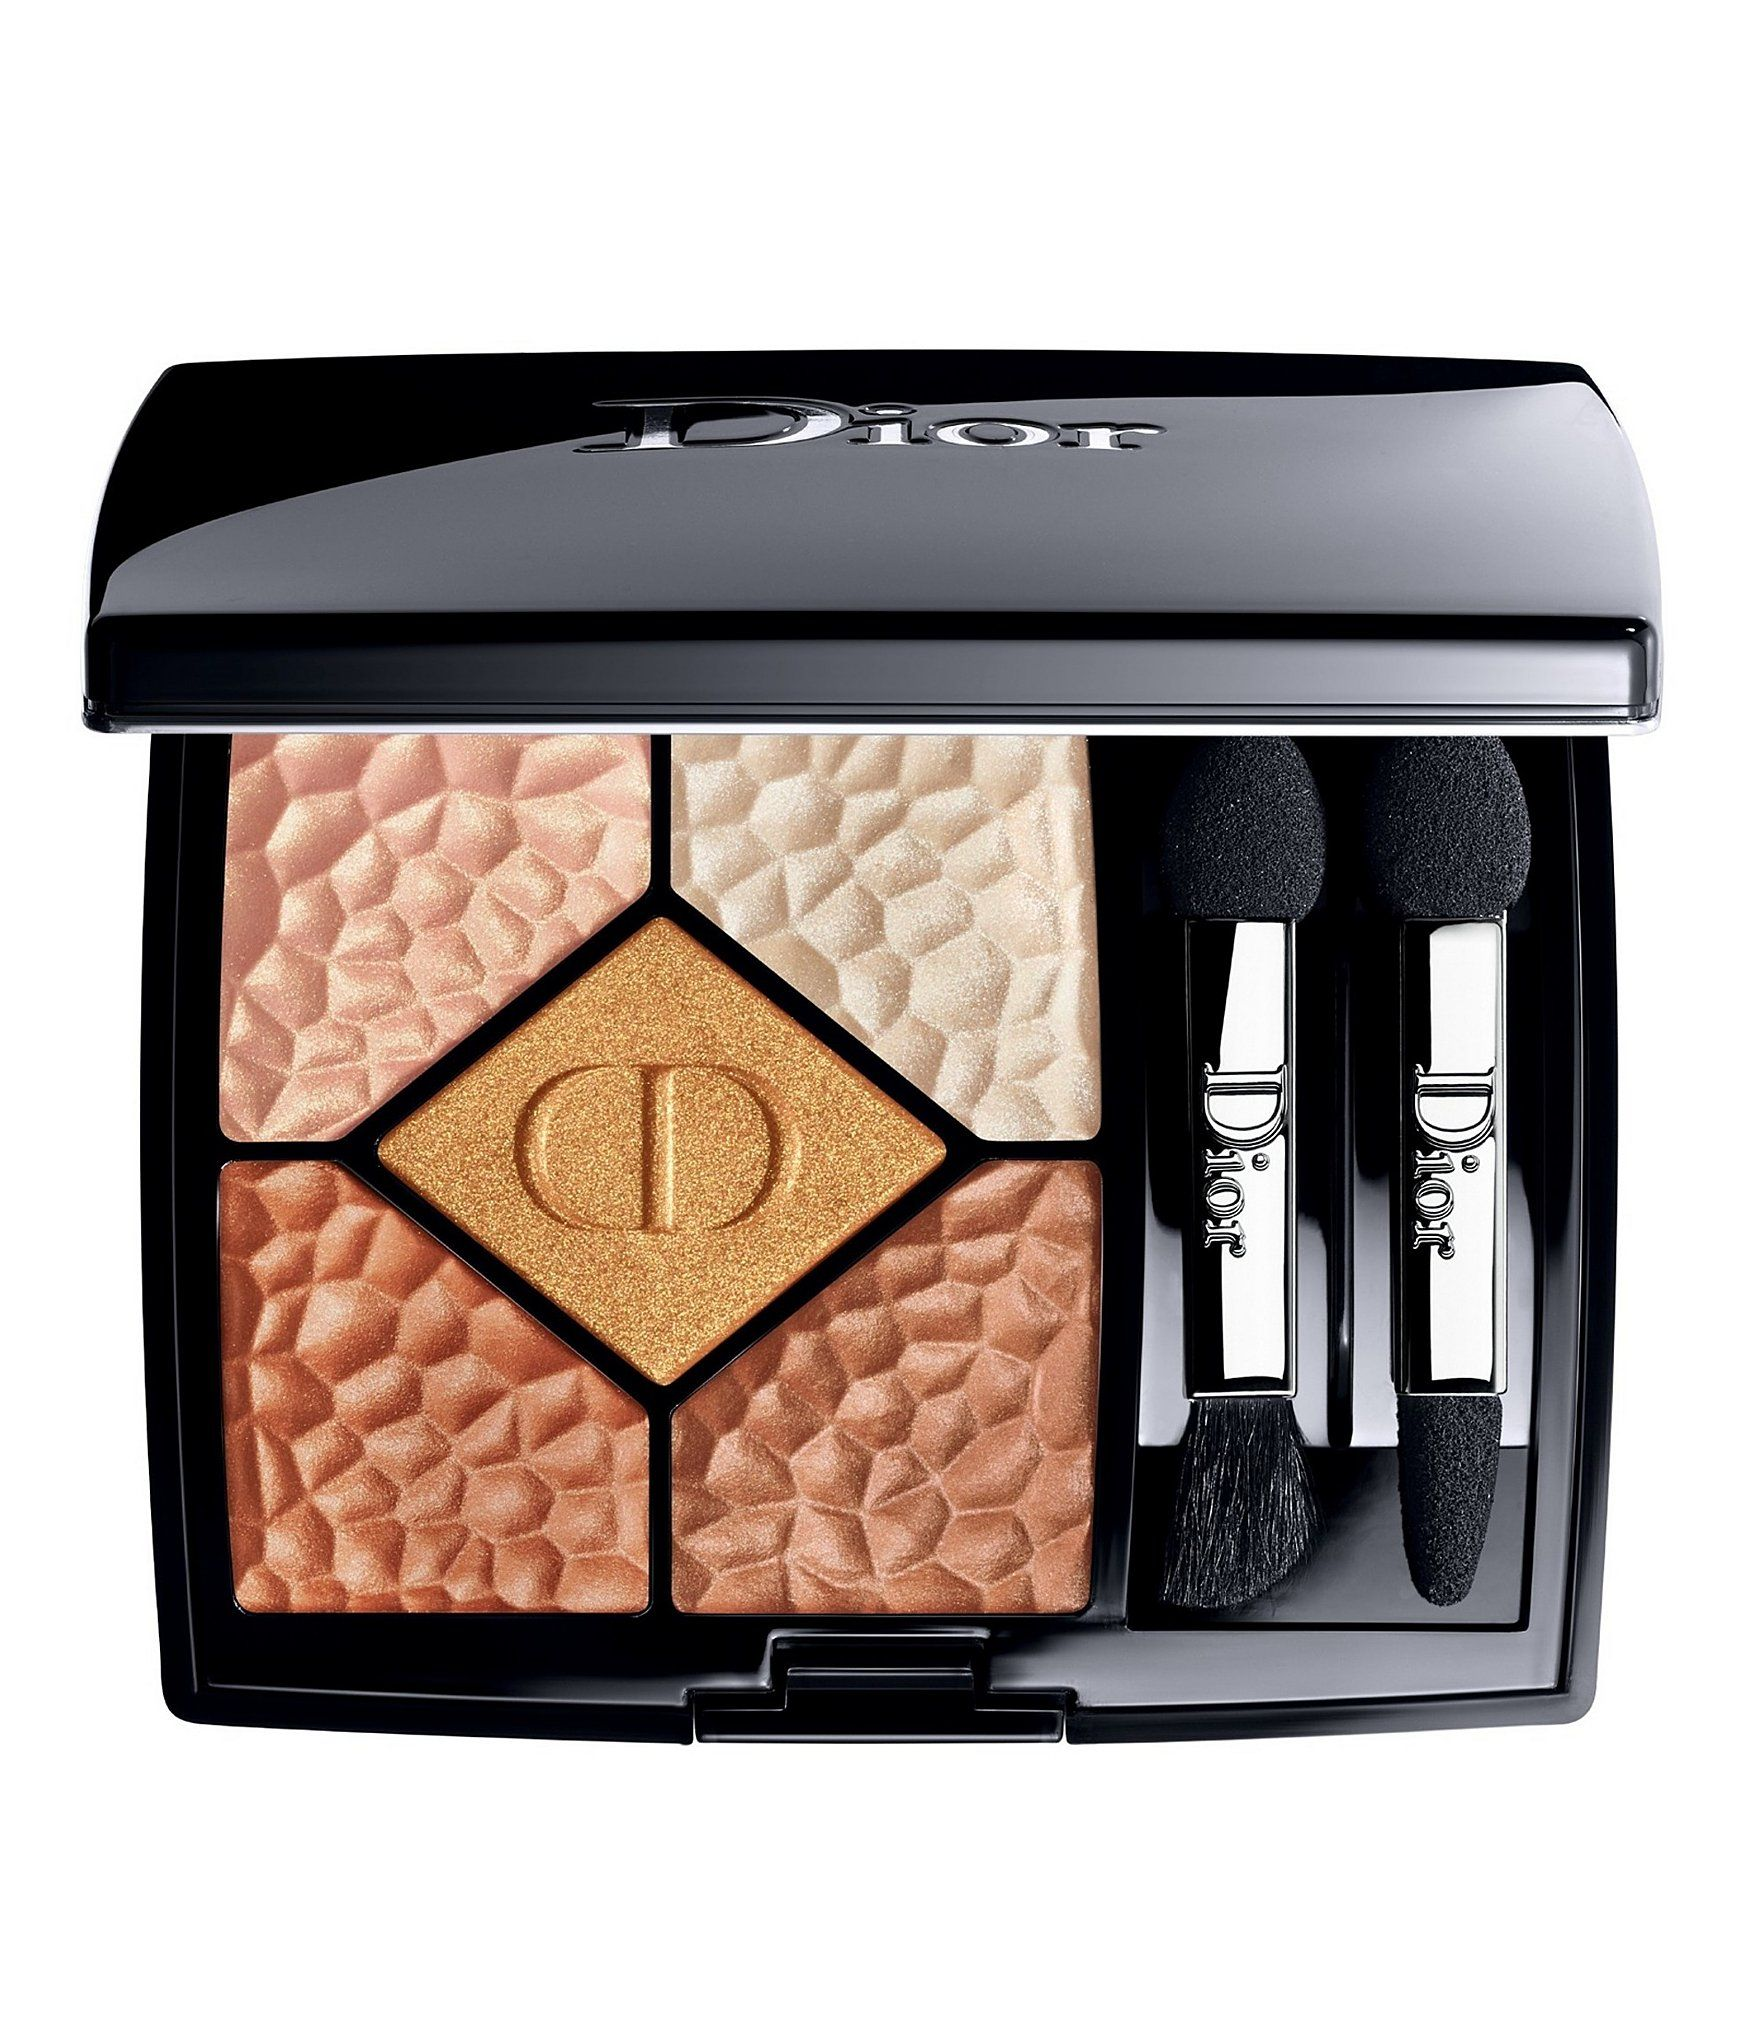 Dior 5 Colours Wild Earth Collection High Fidelity Colours